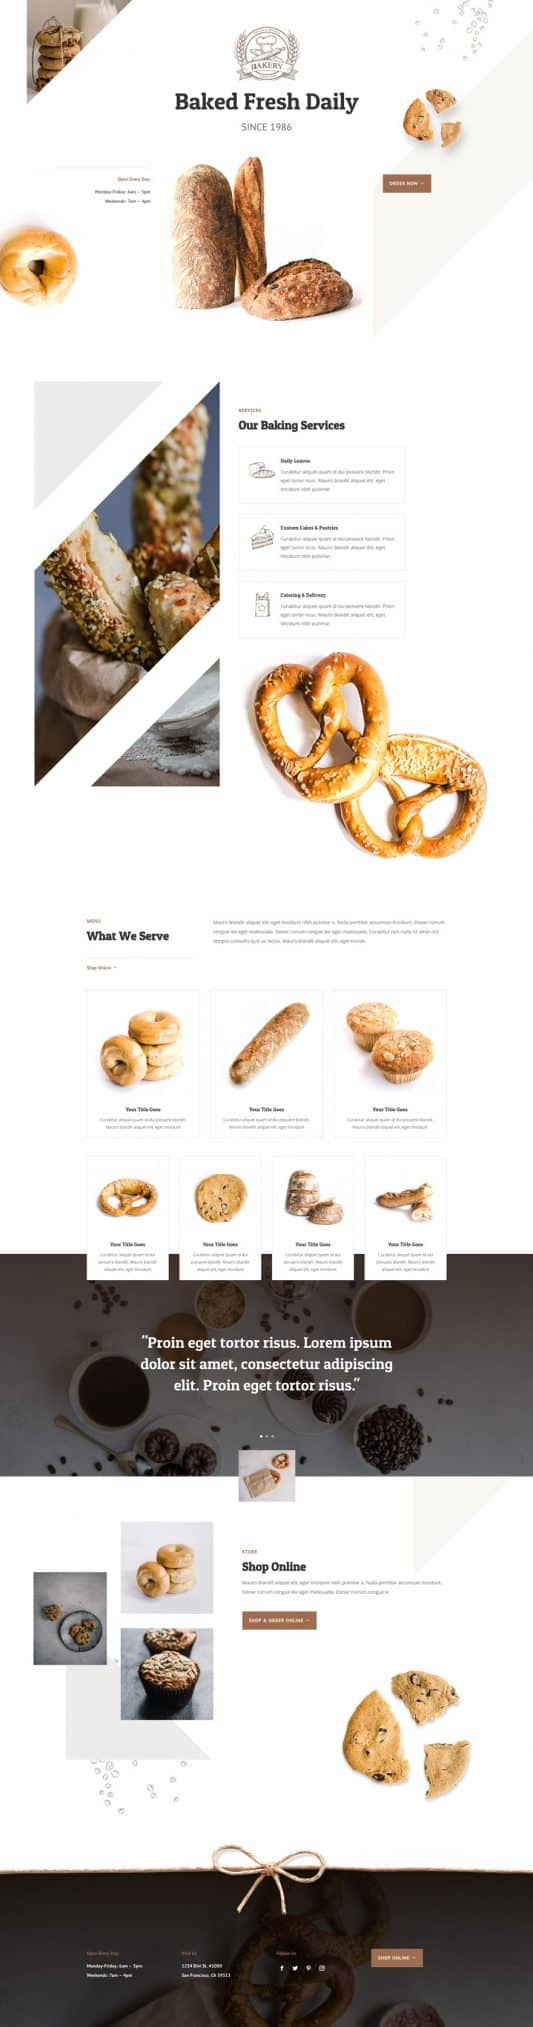 Bakery Web Design 3